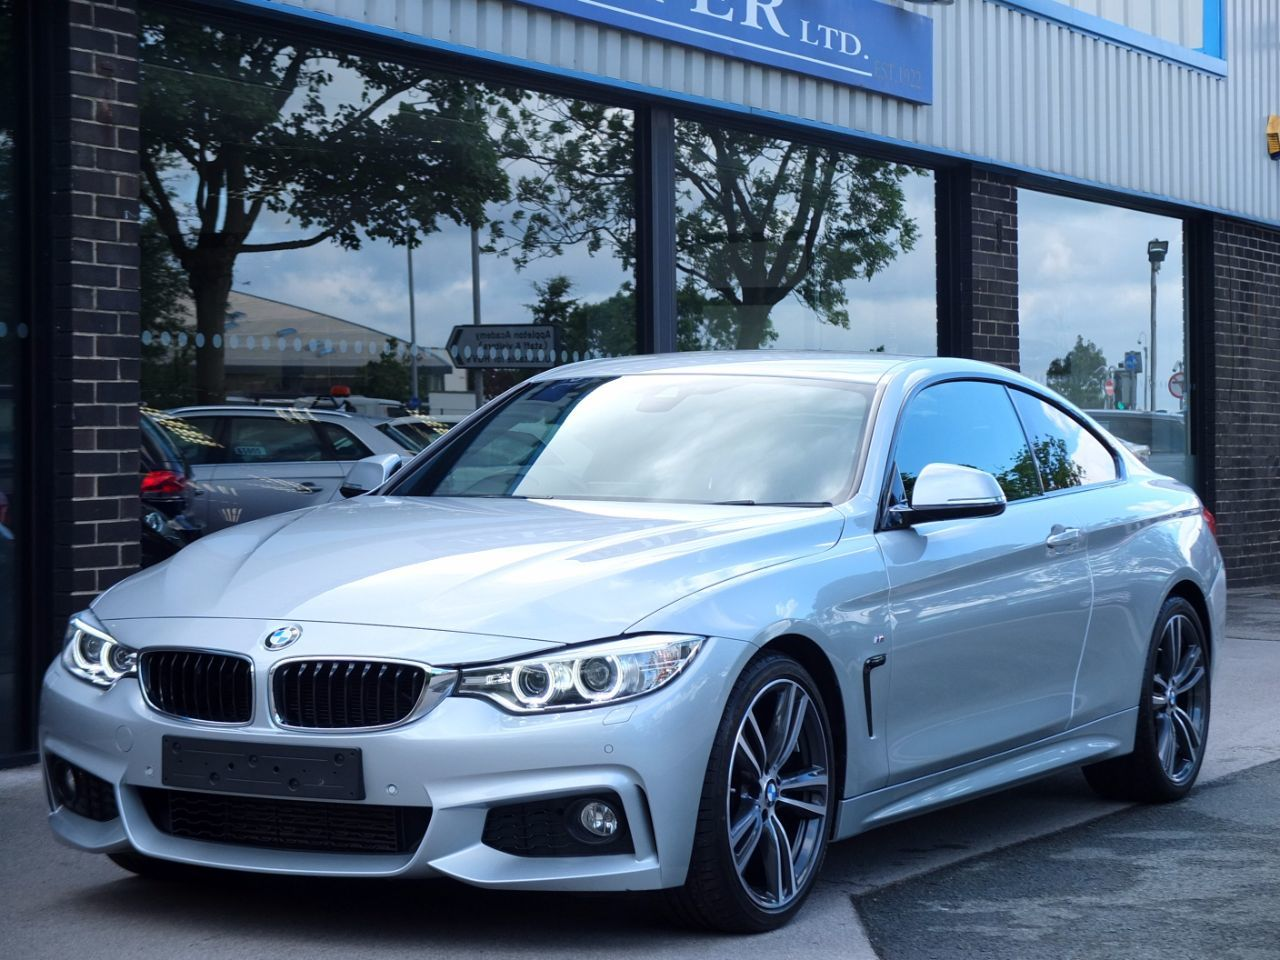 BMW 4 Series 3.0 430d M Sport Design Pack Auto Coupe Diesel Glacier Silver MetallicBMW 4 Series 3.0 430d M Sport Design Pack Auto Coupe Diesel Glacier Silver Metallic at fa Roper Ltd Bradford